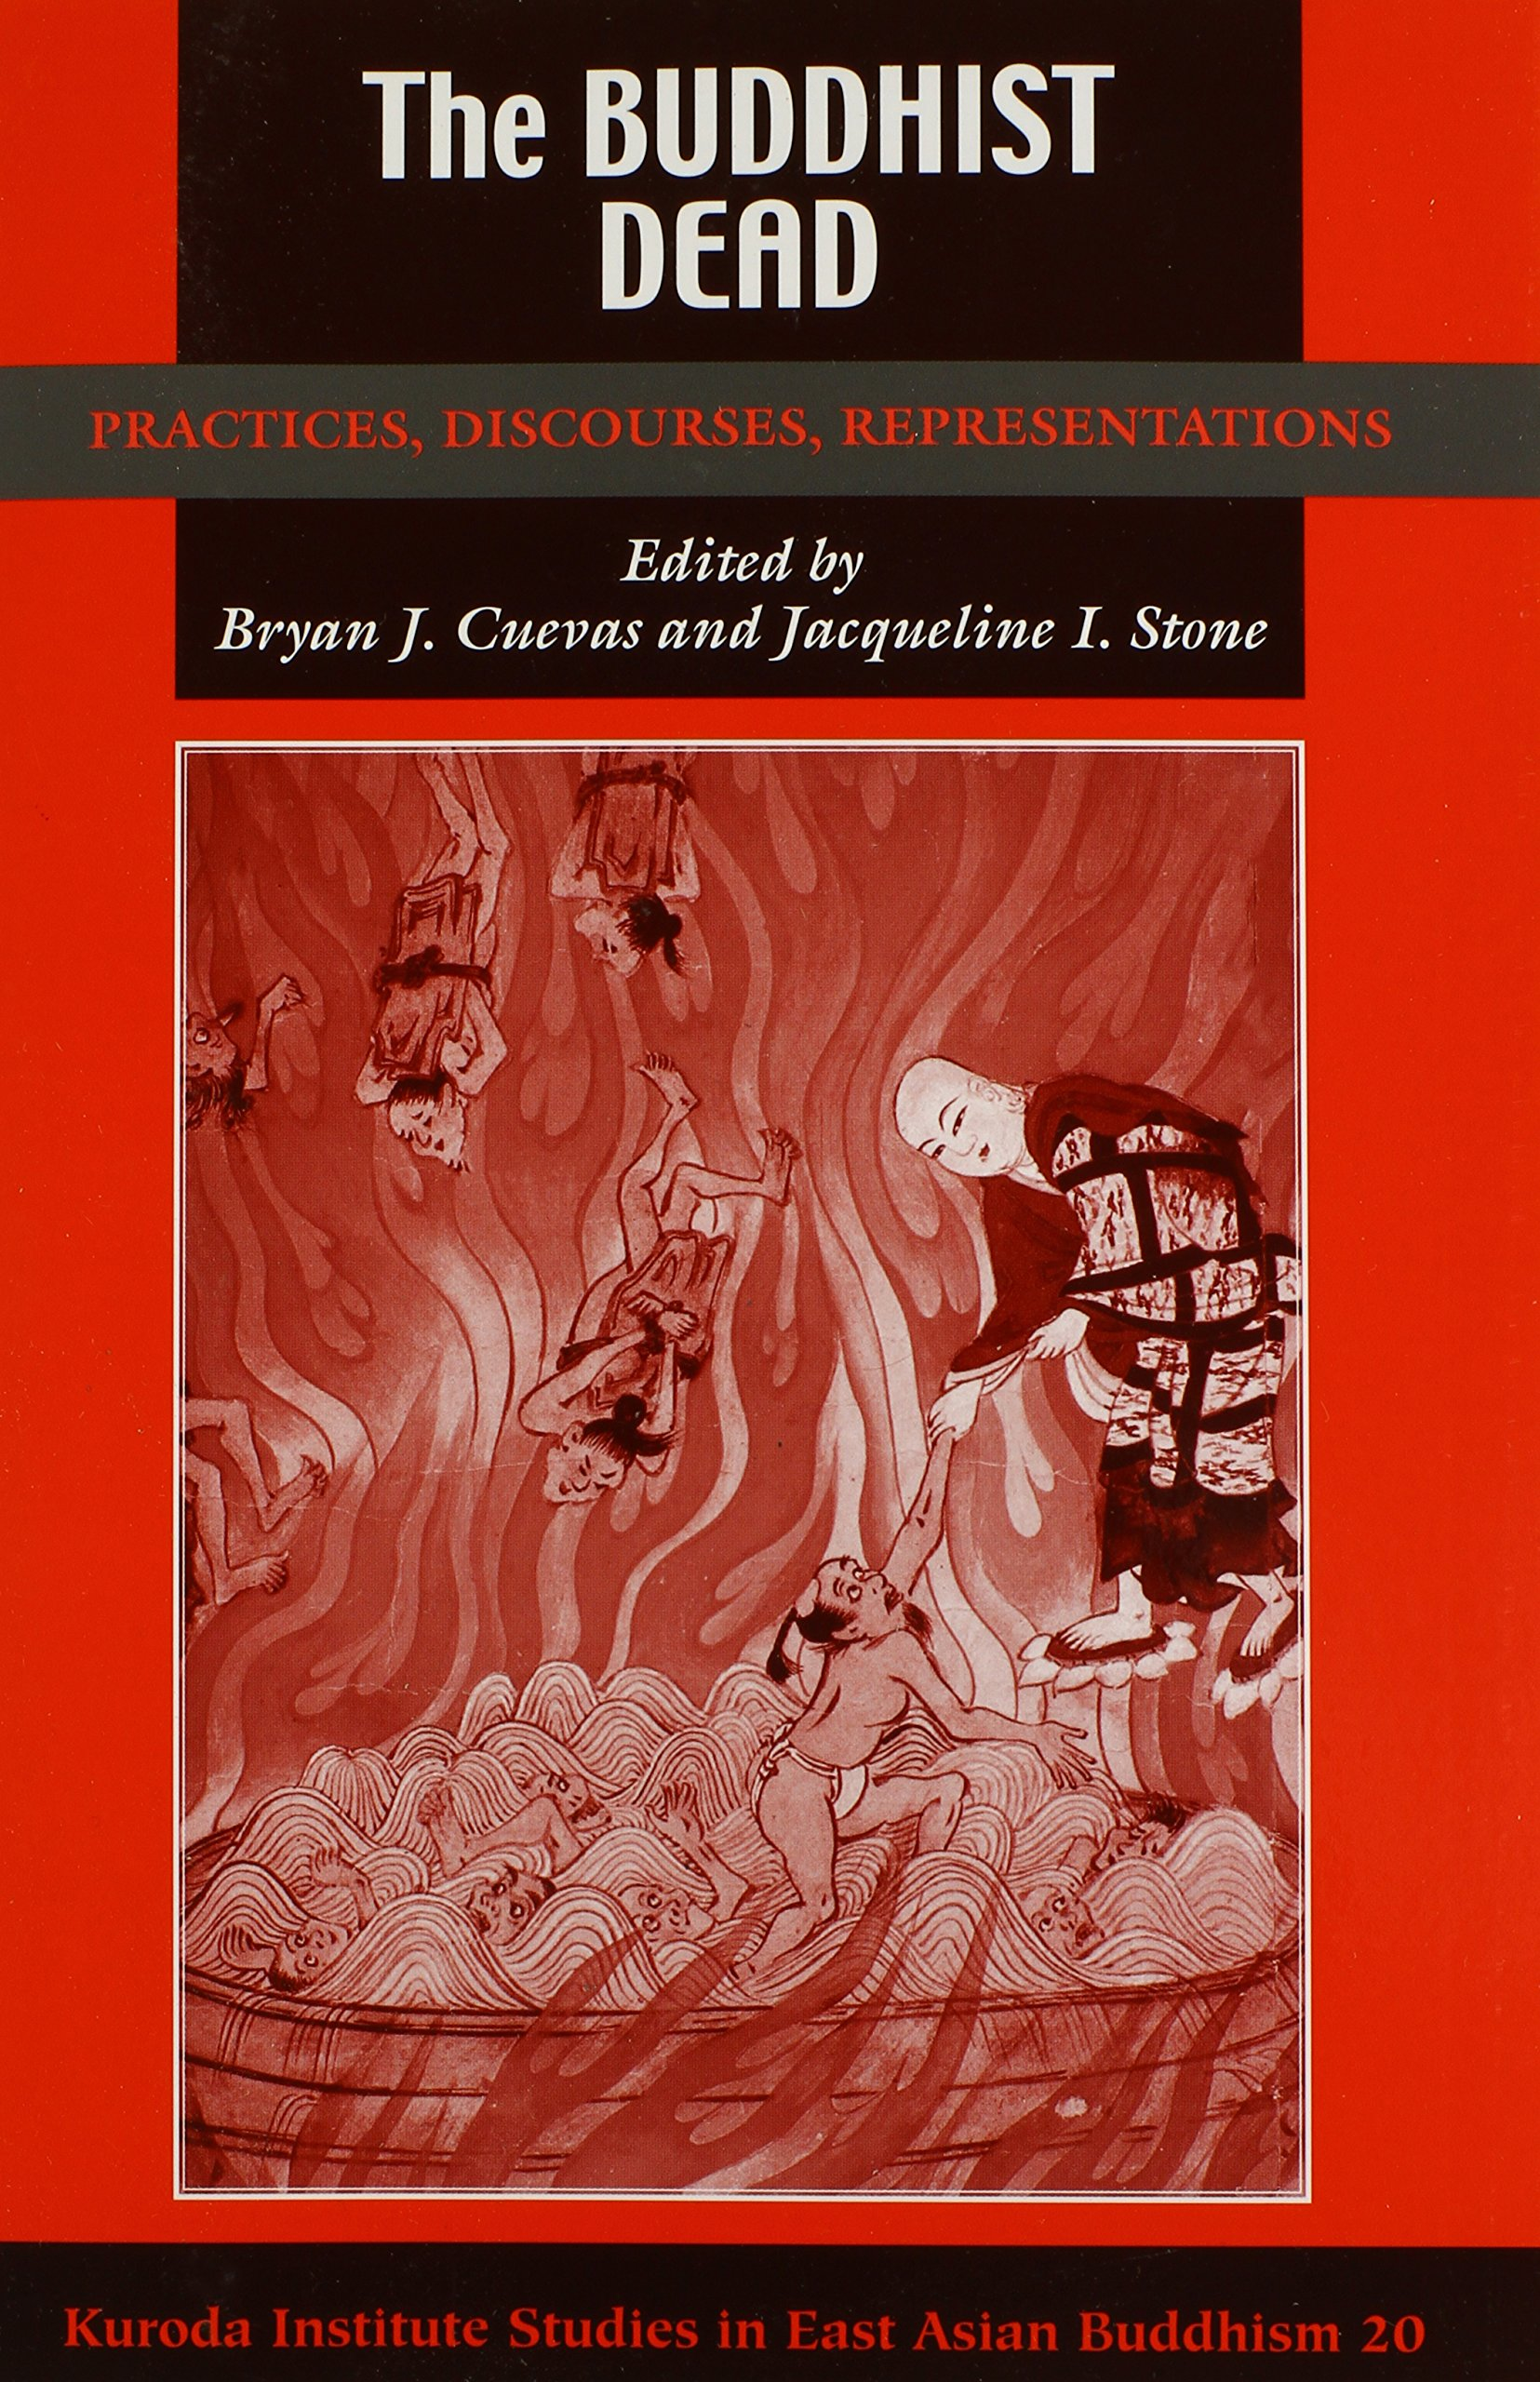 The Buddhist Dead: Practices, Discourses, Representations (Kuroda Studies in East Asian Buddhism)